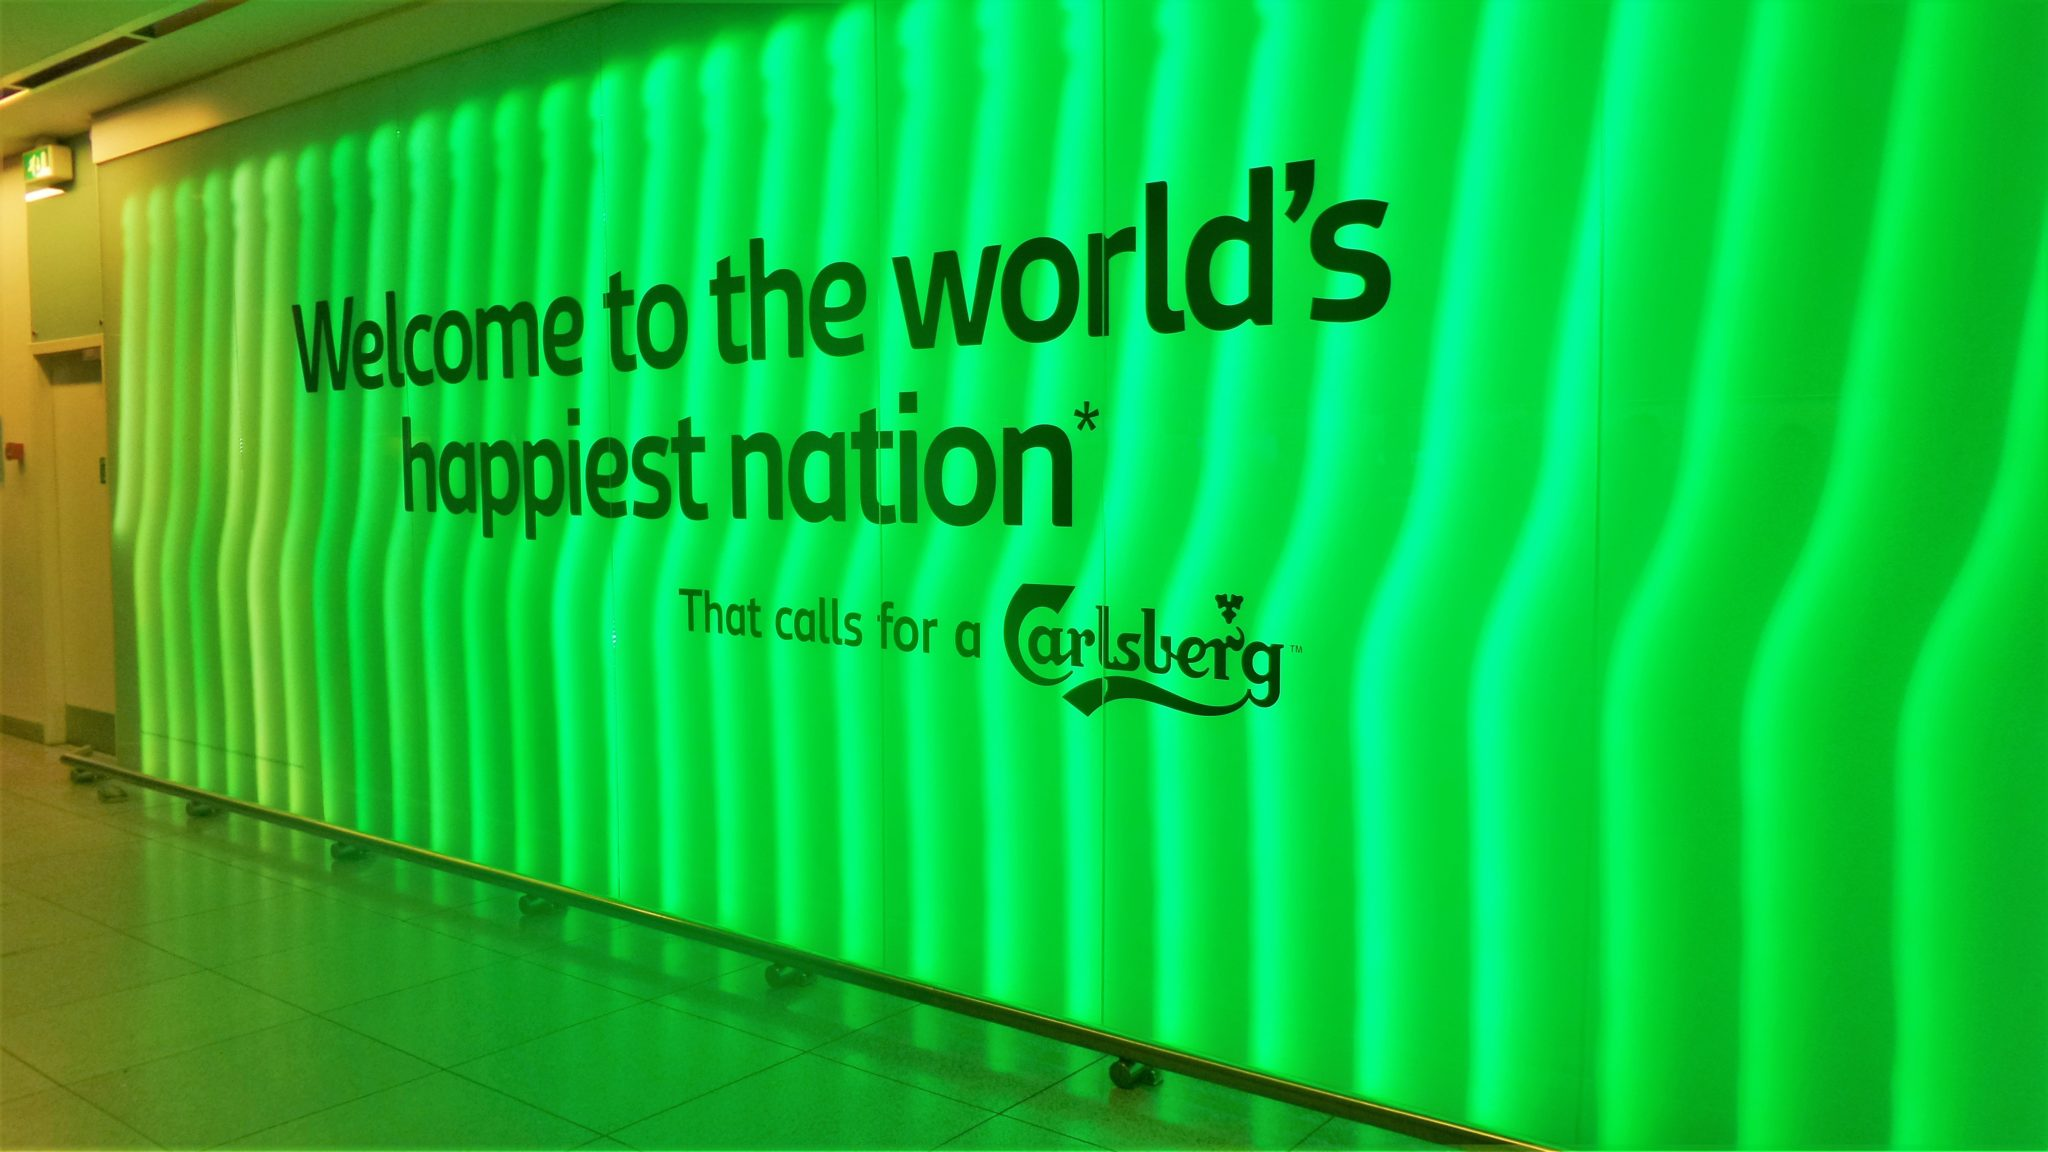 World's happiest nation sign, Copenhagen airport, Denmark